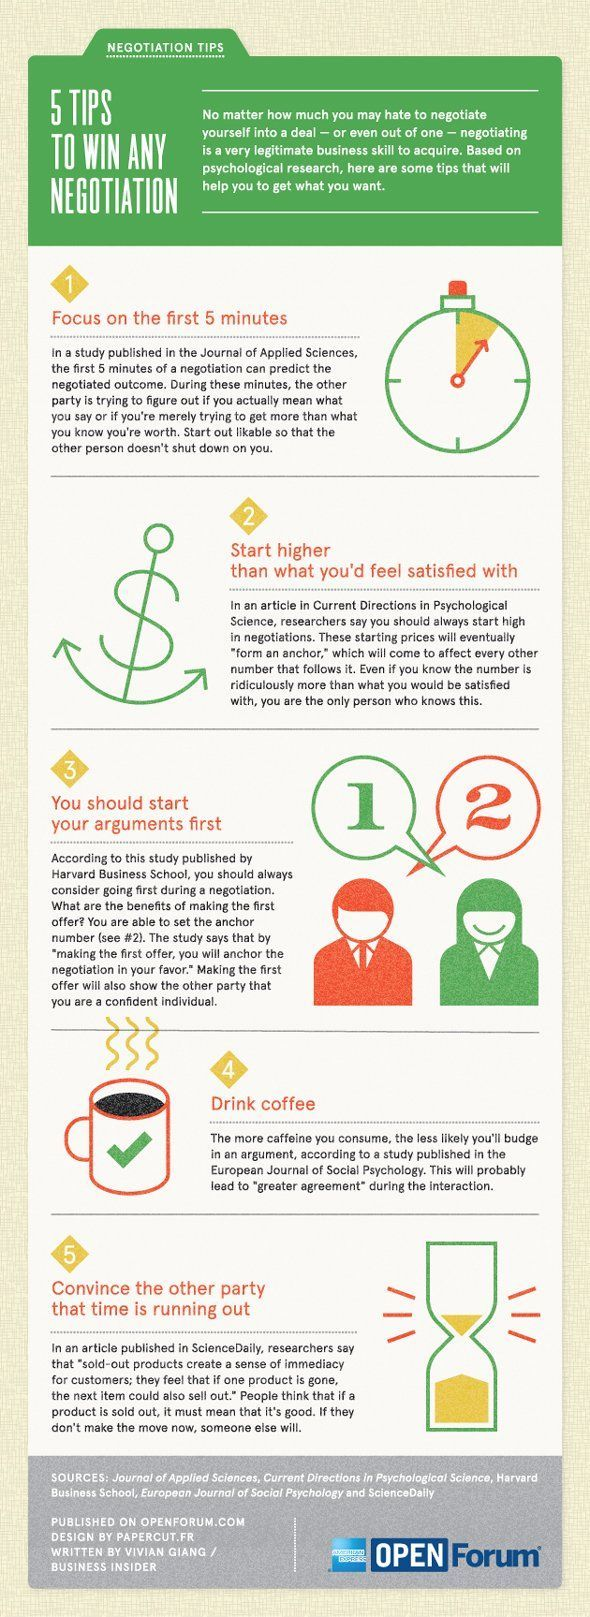 Some Good Tips For Salary Negotiations. 5 Tips To Win Any Negotiation 5  Types Of Business Negotiation Strategies That Work